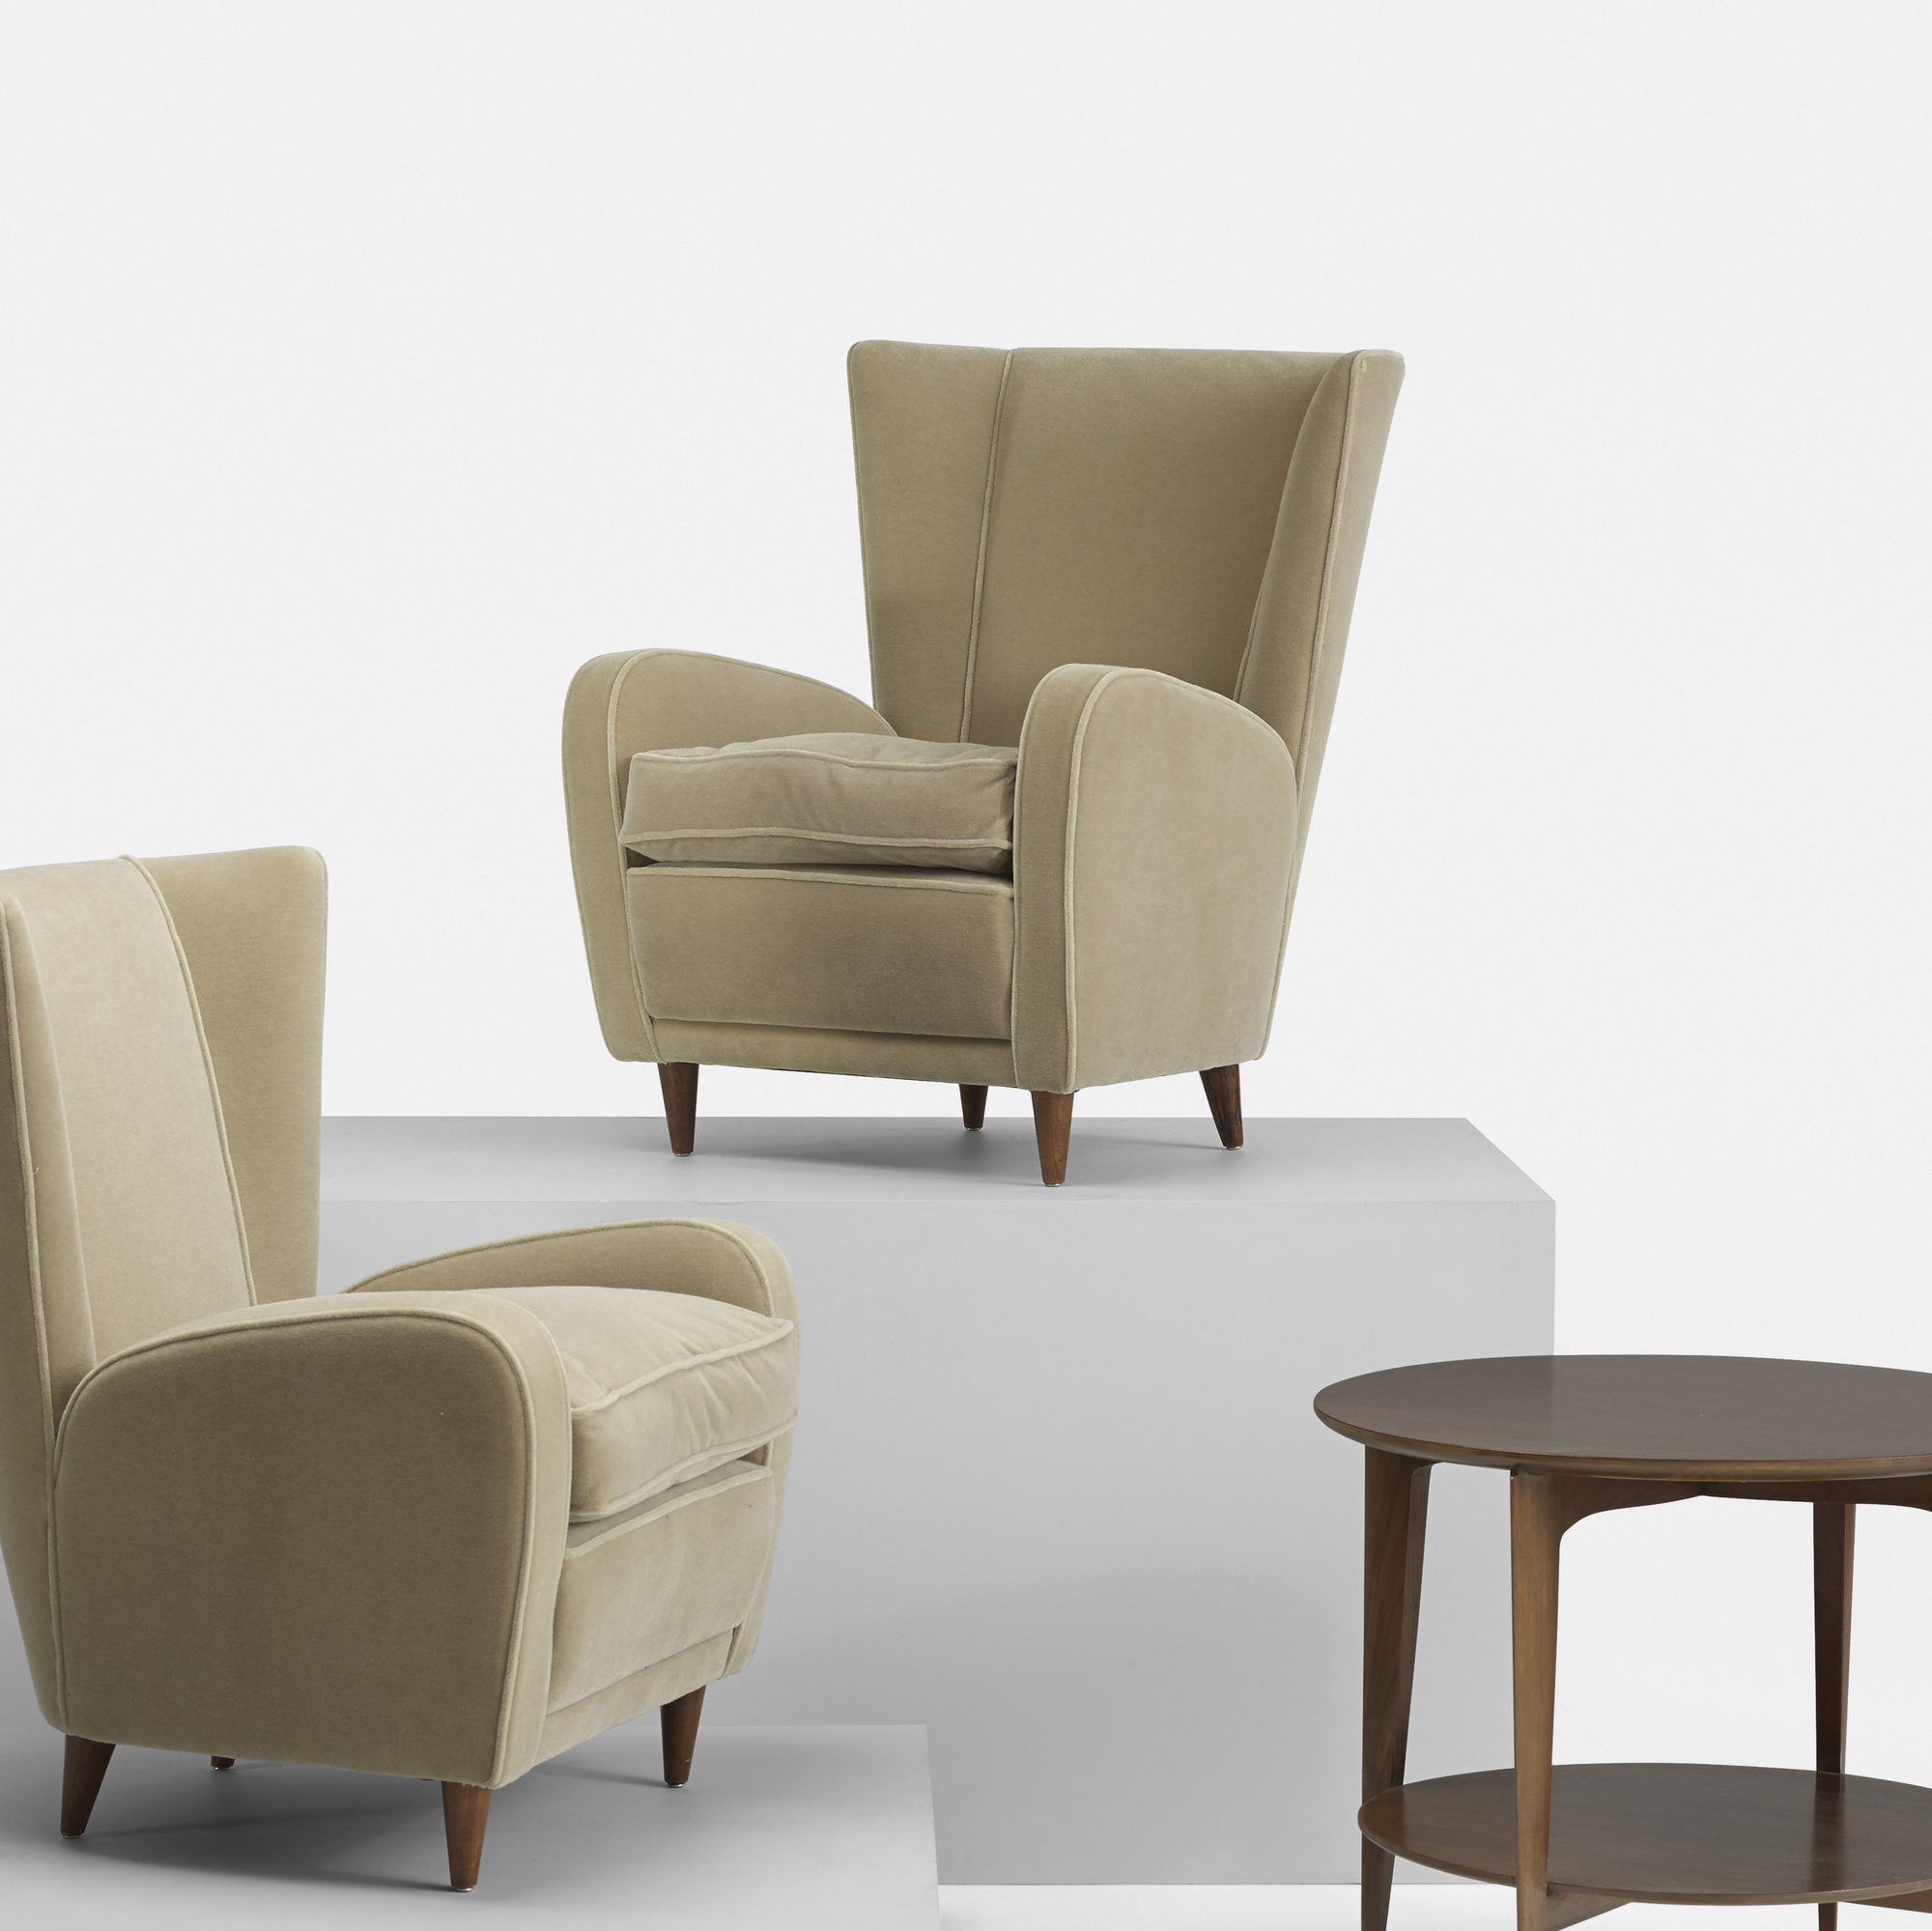 242: Paolo Buffa / pair of lounge chairs from Hotel Bristol, Merano (3 of 5)